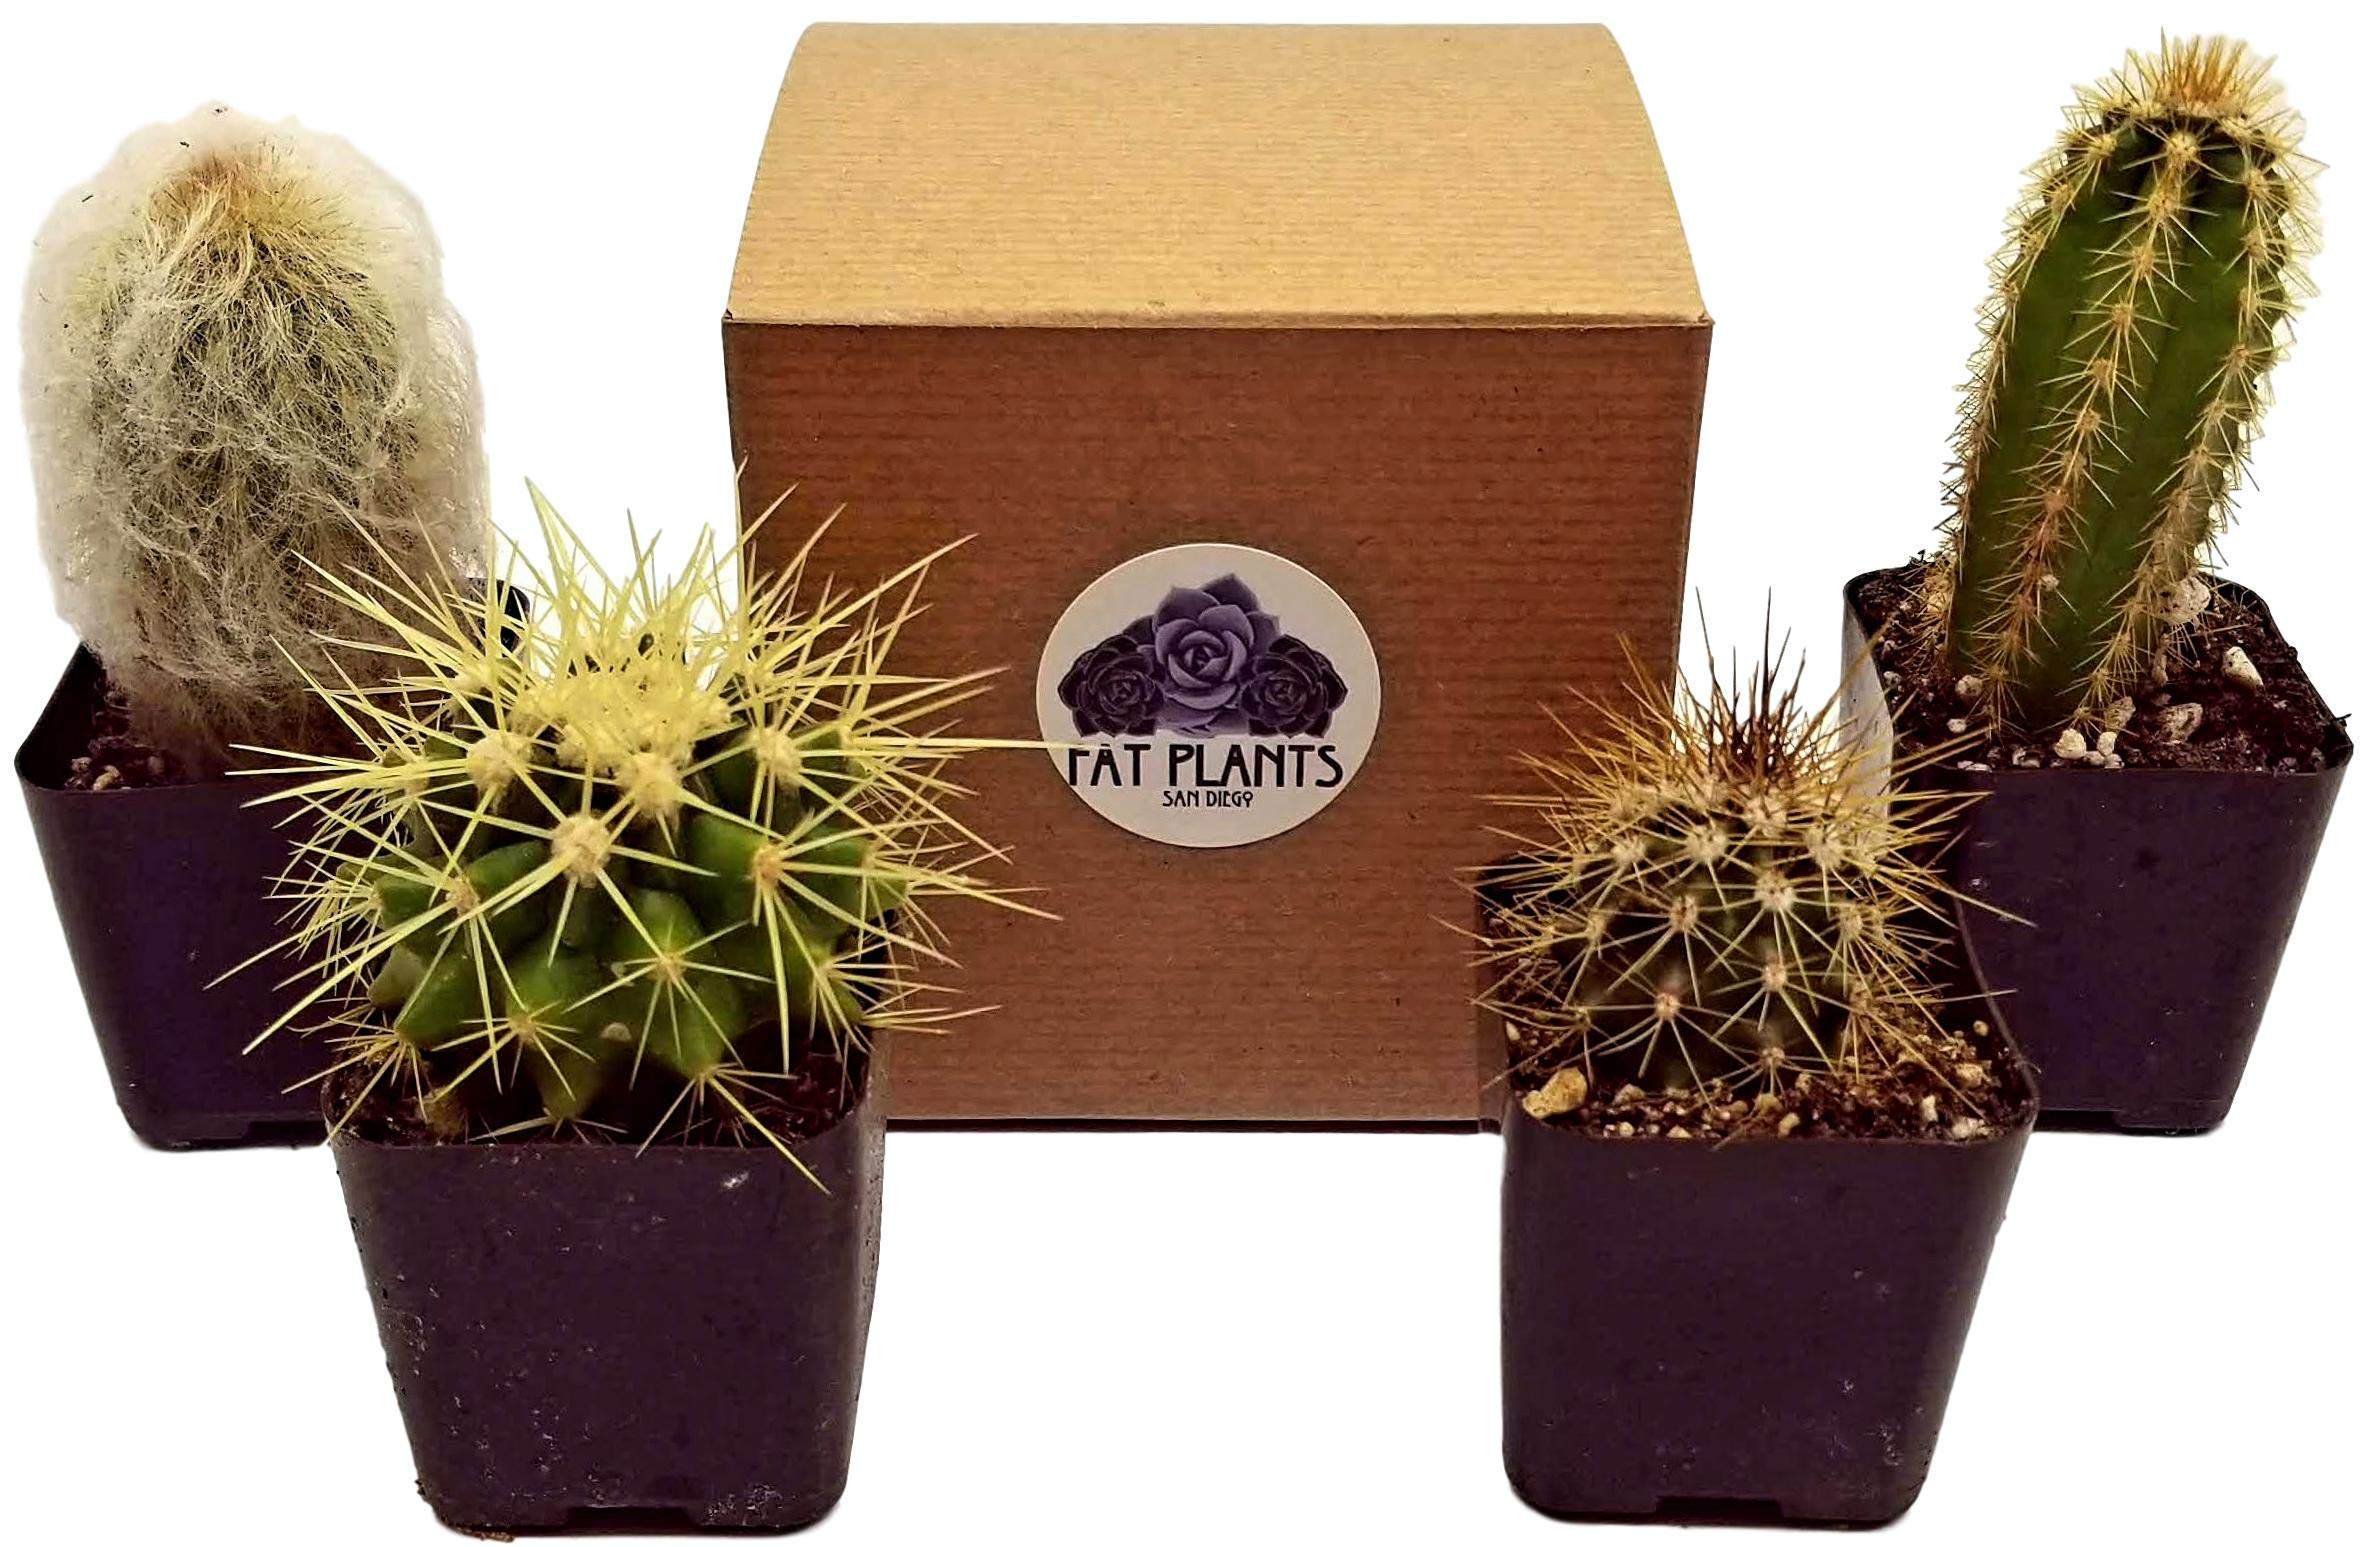 Fat Plants San Diego Mini Cactus Plants in Plastic Planters